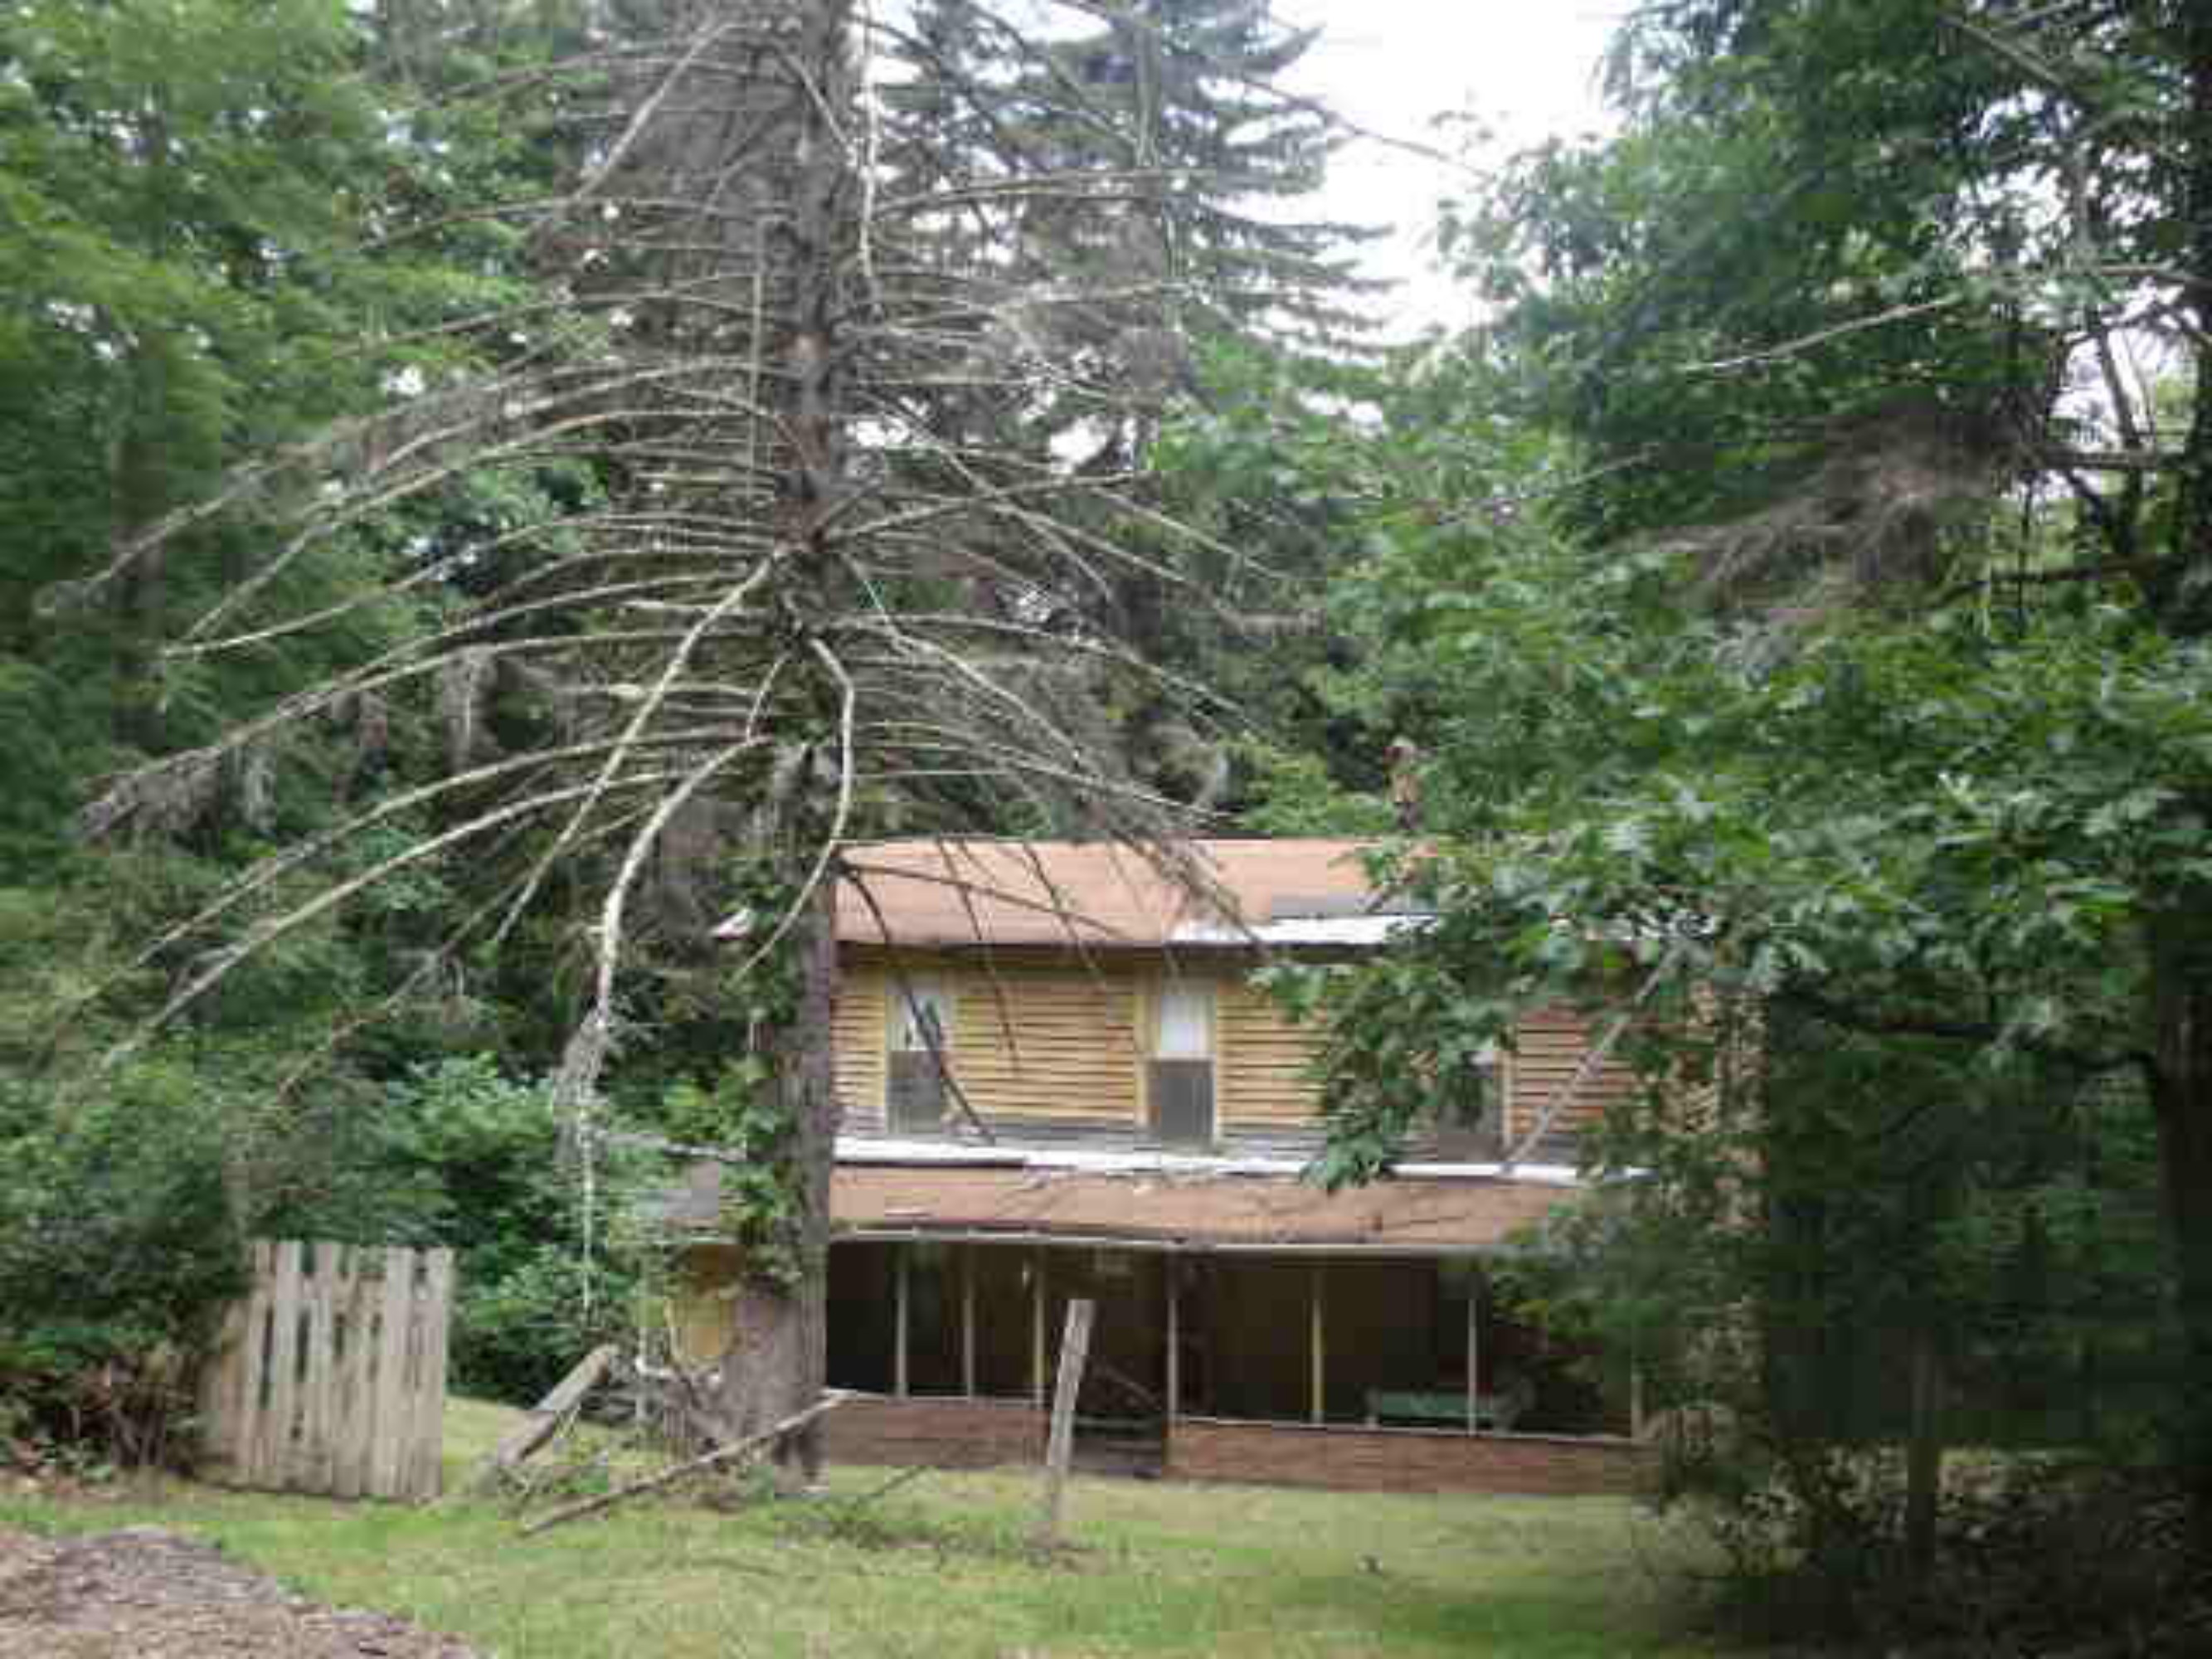 Abandoned House in the Woods, Abandoned, House, Old, Woods, HQ Photo